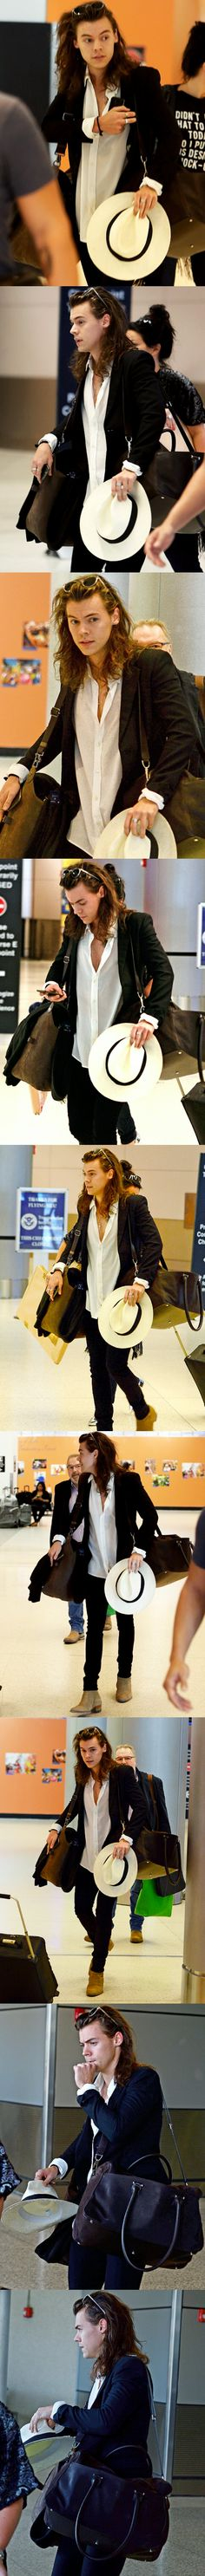 Harry Styles arriving at Miami airport - 12/26